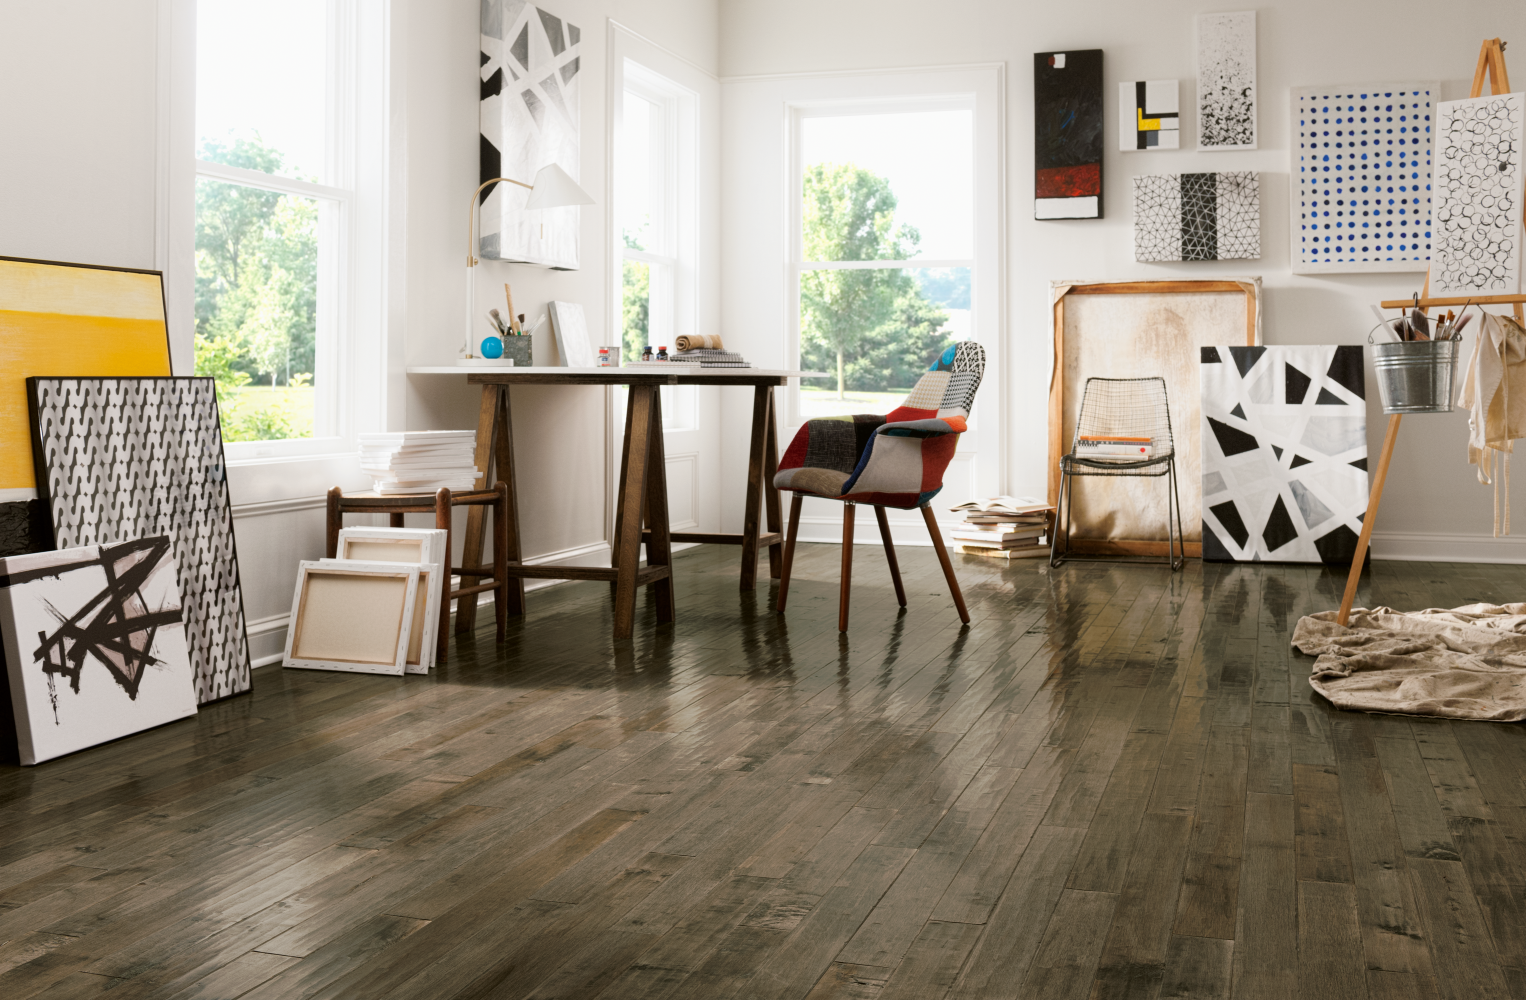 Armstrong American Scrape Hardwood Nantucket 3 1/4 in Nantucket SAS319